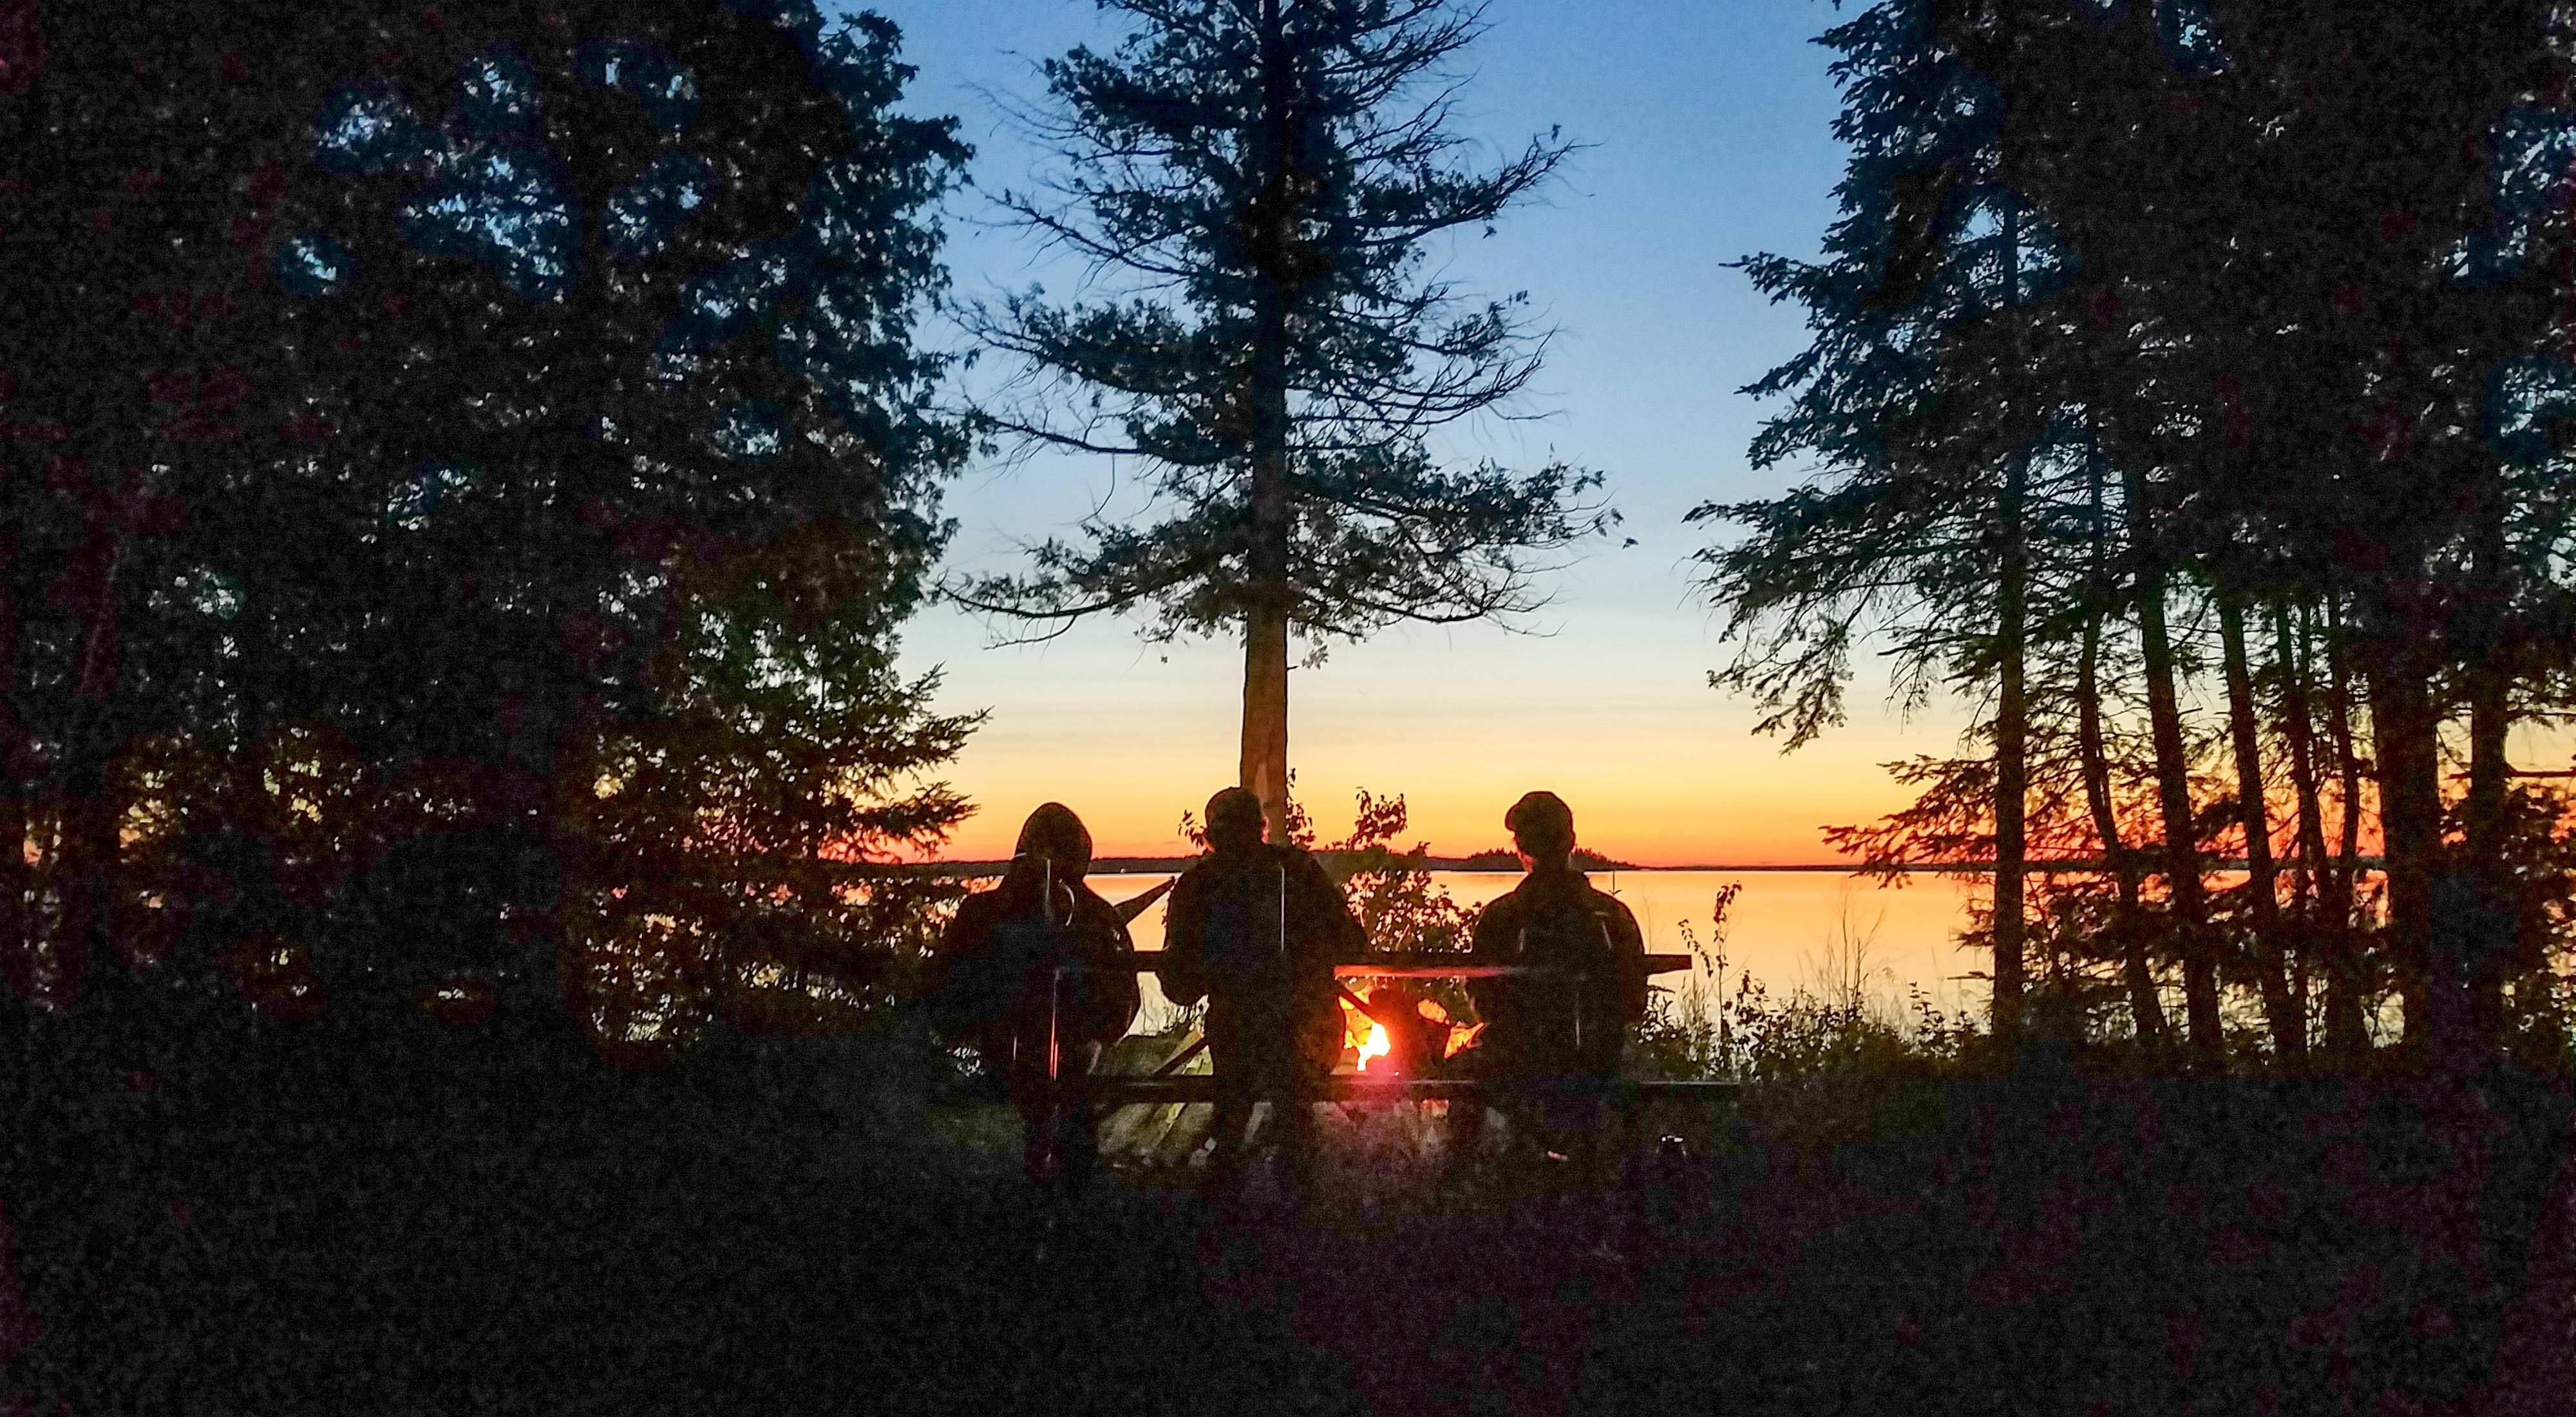 Three silhoutted people sitting around a campfire in a forest at sunset.